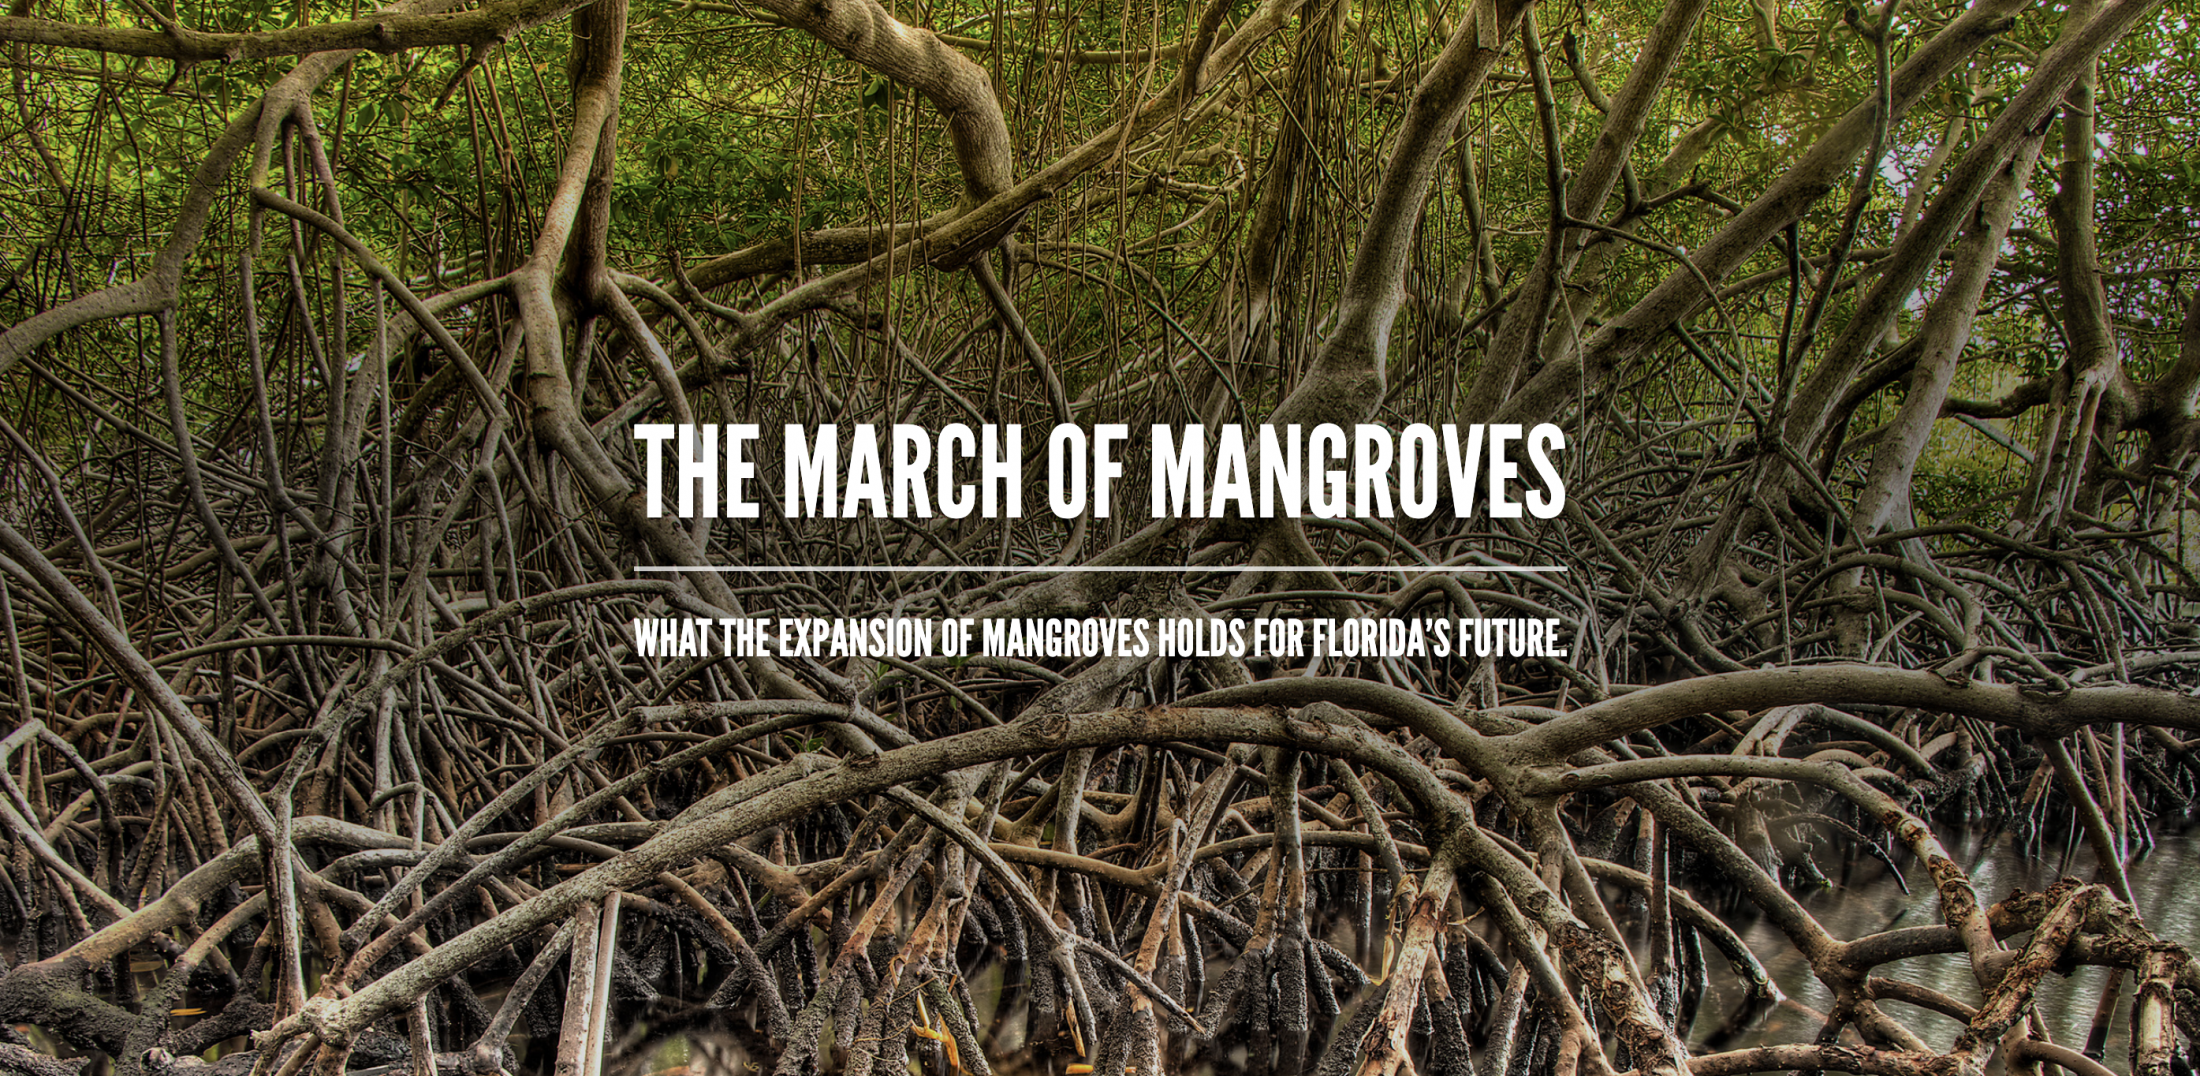 The March of Mangroves